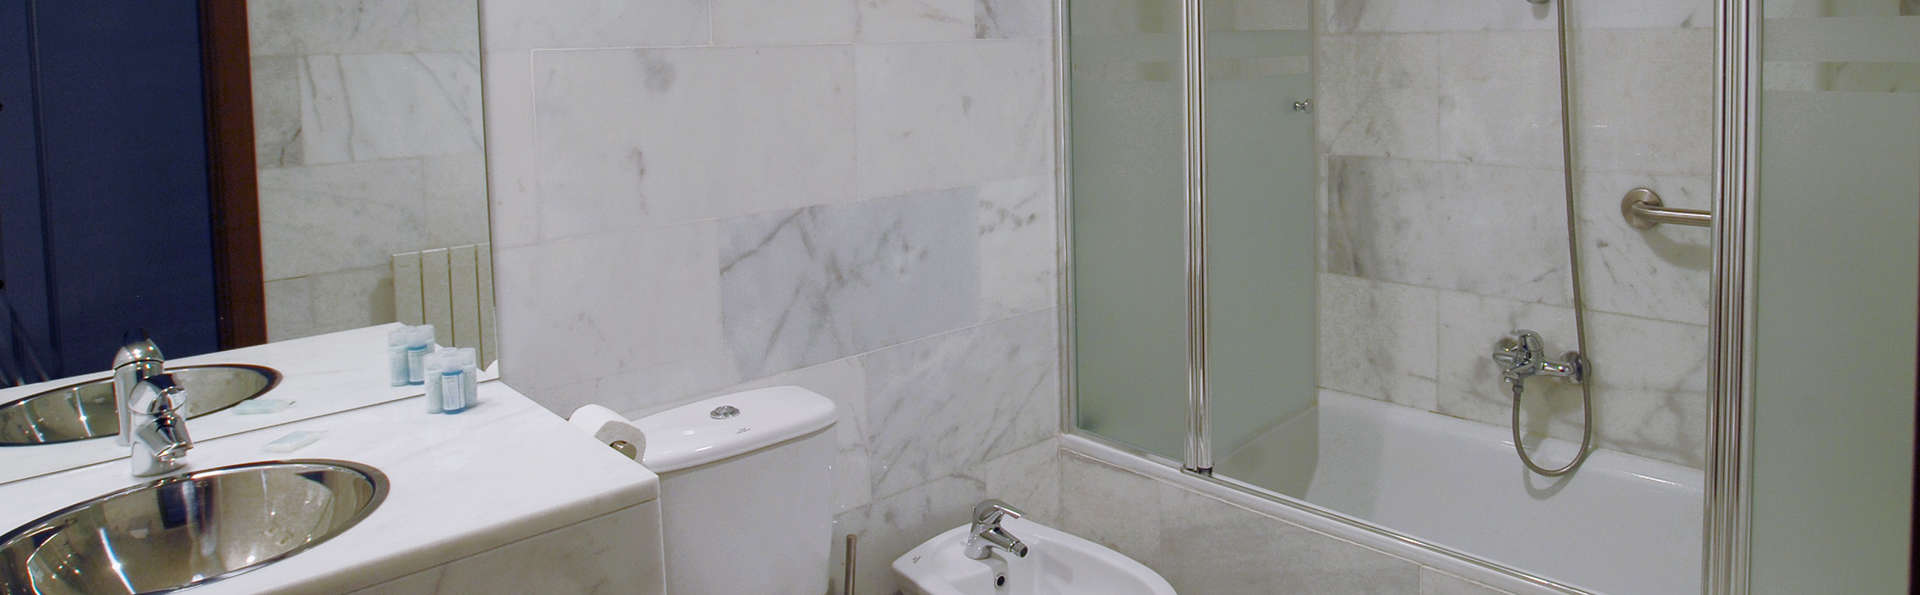 Hostatgeria de Poblet - edit_bathroom3.jpg